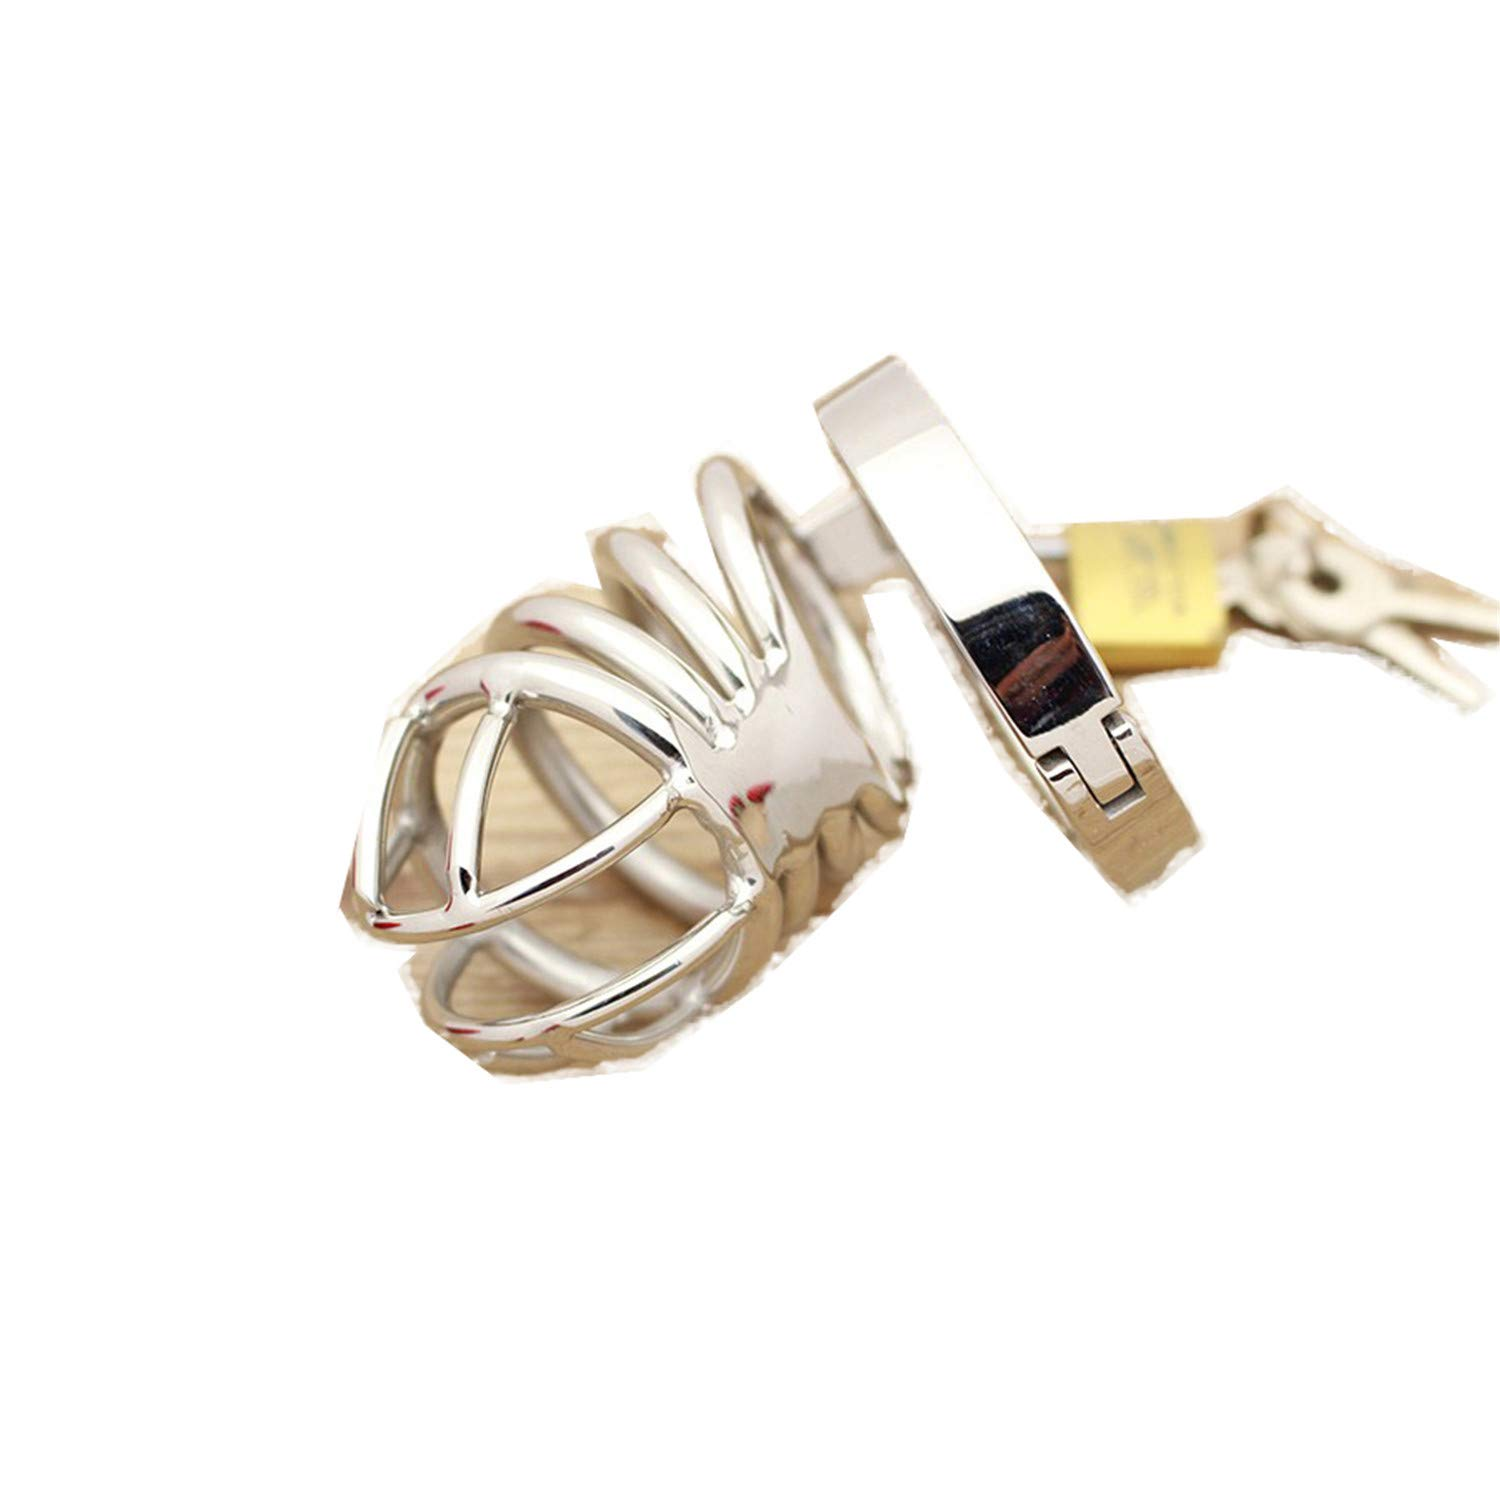 sensitives Male Chastity Device Stainless Steel Cock Short Cage Men's Virginity Lock, Small Chastity Belt Adult Game Sex Toys 38mm by sensitives (Image #5)